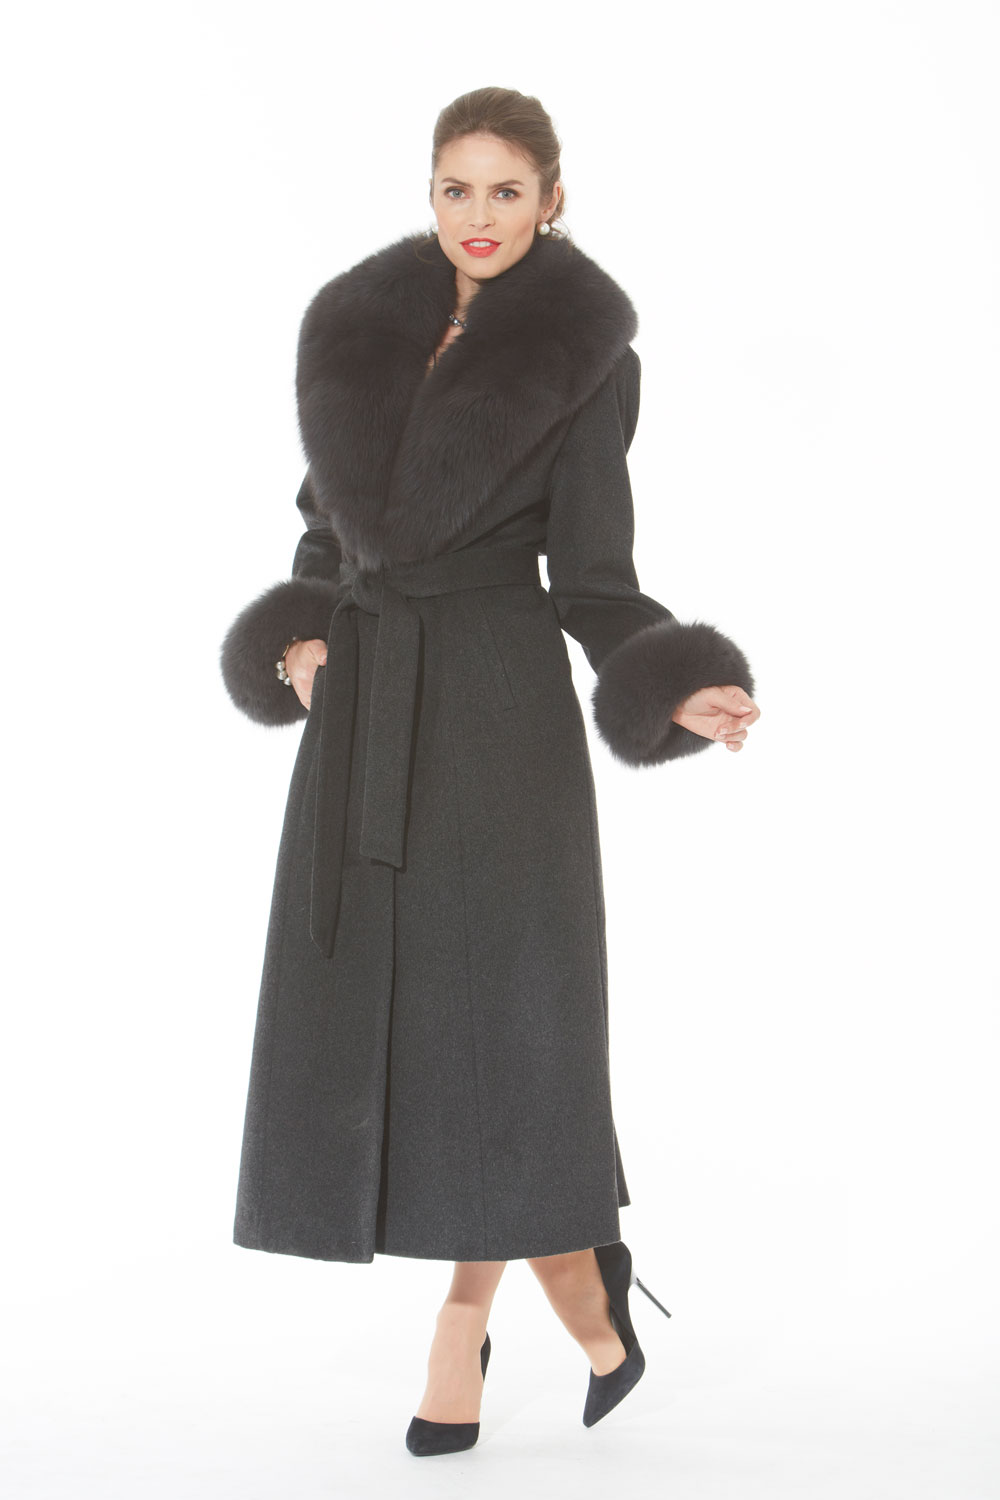 Charcoal Grey Women's Cashmere Coat - Grey Fox Collar and Cuffs